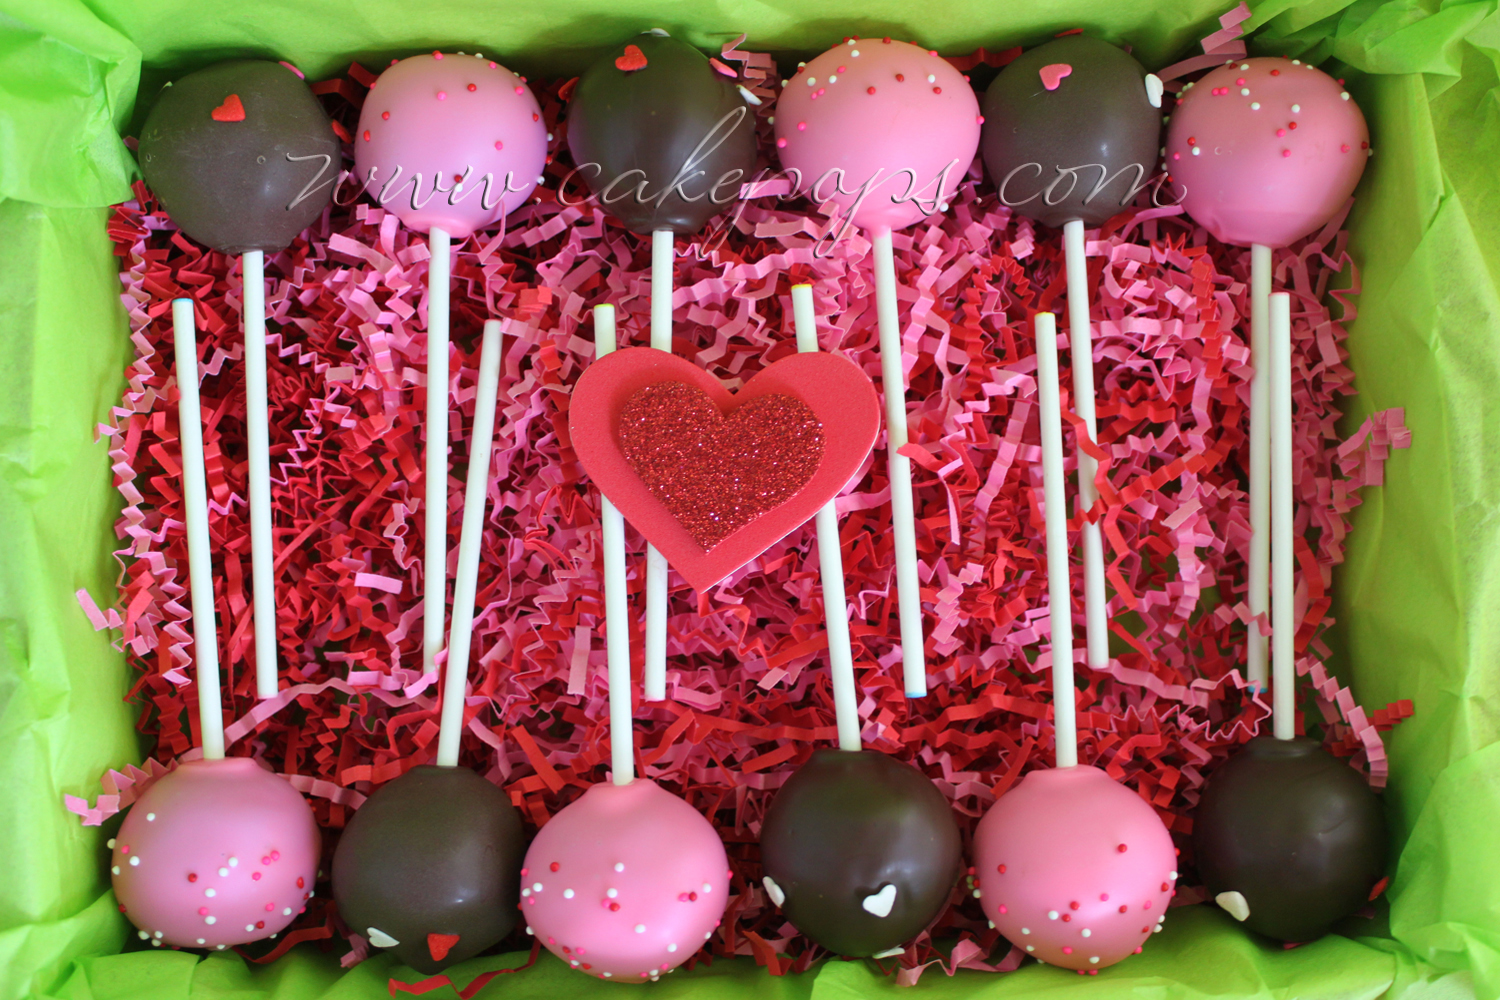 Candys Cake Pops Valentine Cake Pops To Send To Your Loves